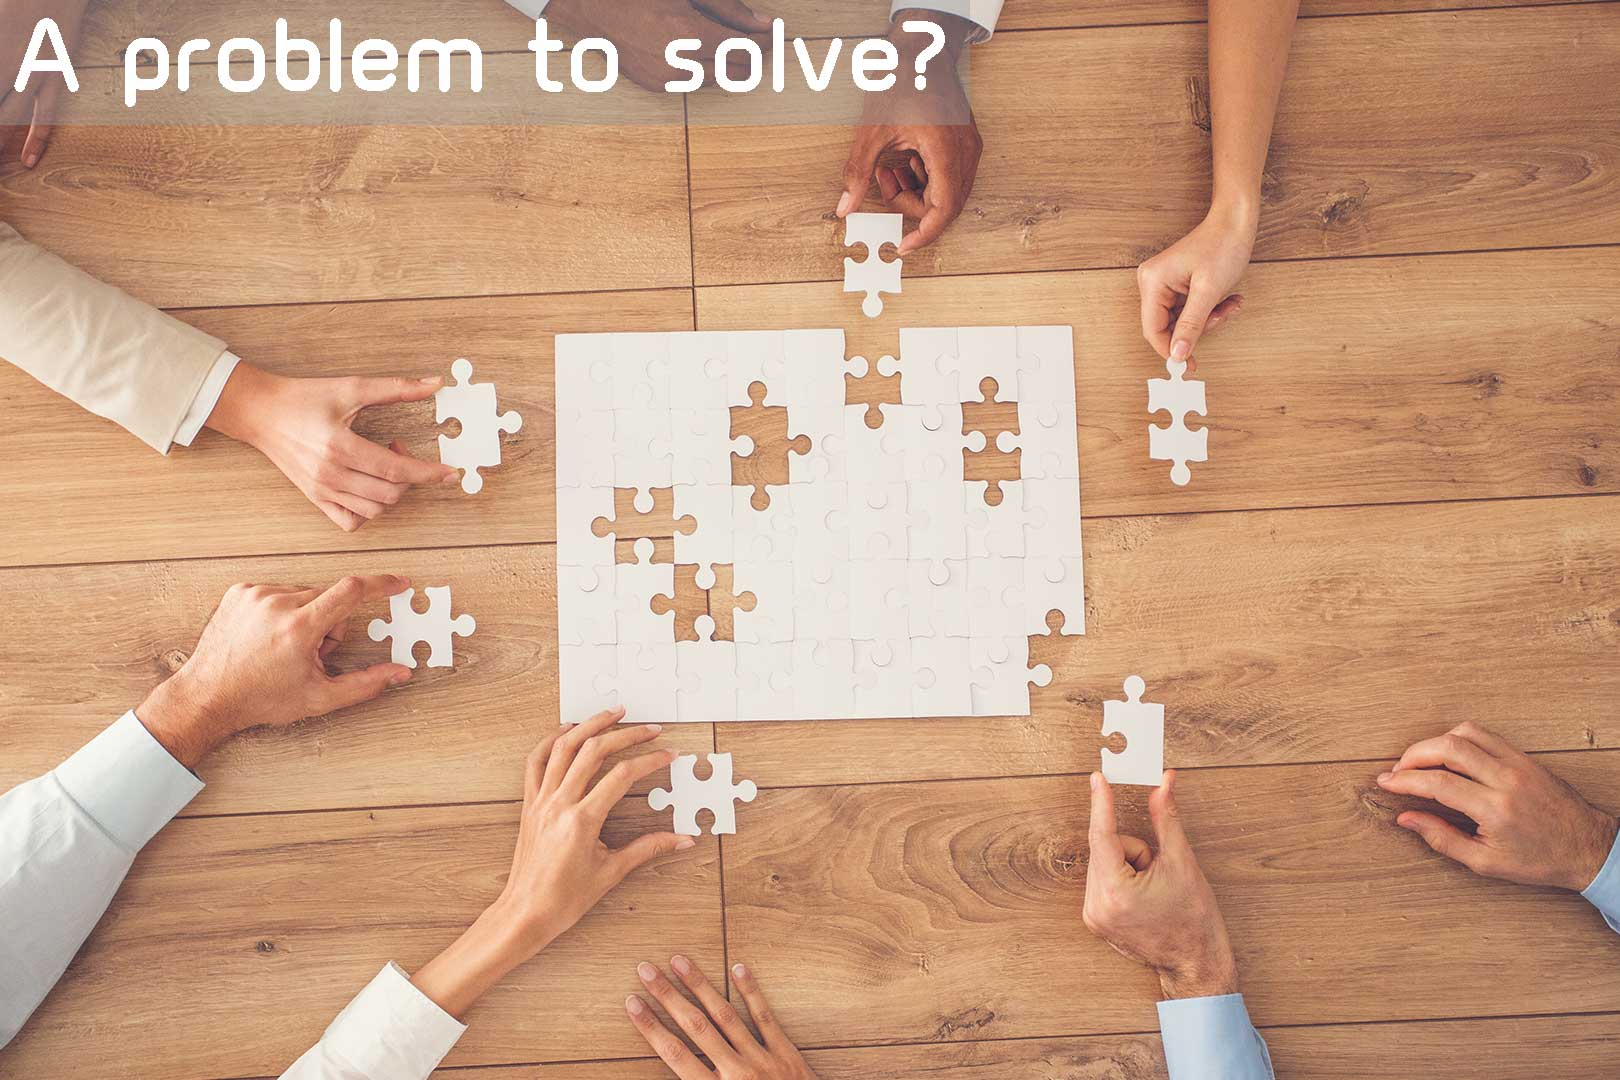 A problem to solve?